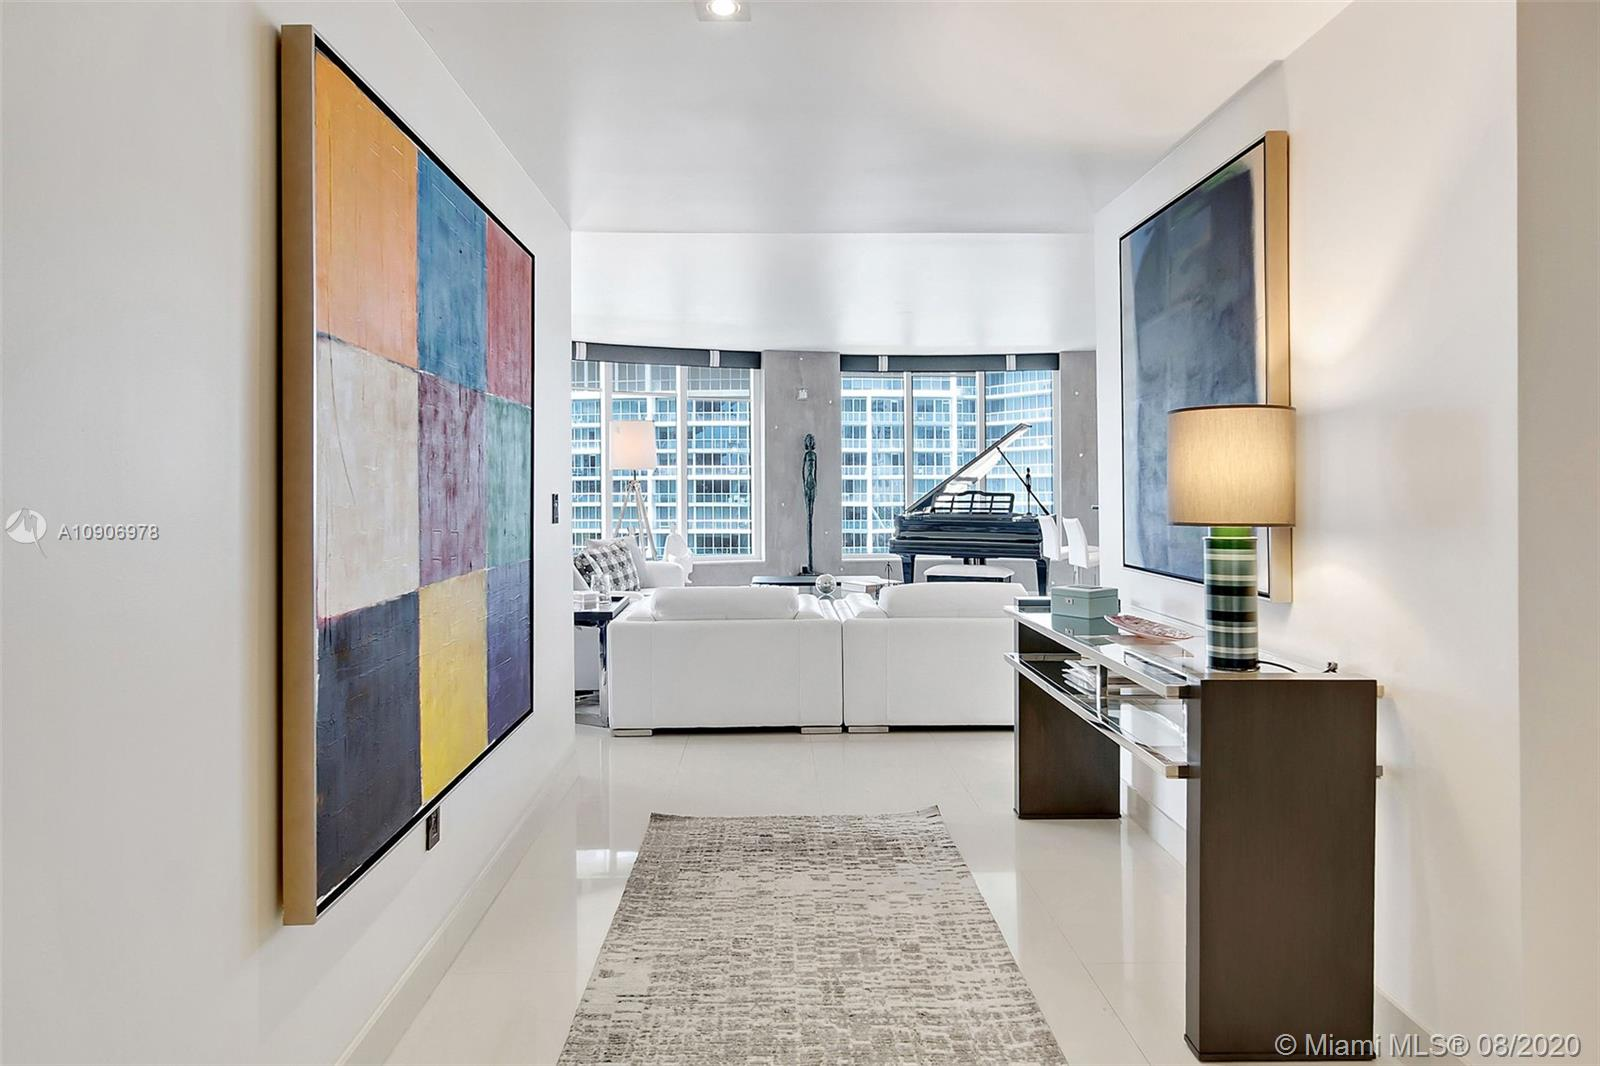 (optional) Fully furnished opportunity at exclusive Carbonell on Brickell Key! Designer's personal residence. Pamper yourself in luxurious style compliments of Fede Design. Unit offers south/west/north exposure w/great water/city views. Upgrades include Lutron elec. shades, Italian doors/hardware, natural wallpapers, all LED lighting, A/V system run on Sonos w/ built-in speakers. Open kitchen format allows for ultimate flexibility and exquisite flow. All upgraded SS appliances incl. Sub-Zero refrigerator. Elegant foyer makes a statement & you know you have arrived! Split master has 2 walk-in closets, sitting room & decorative fireplace. 2 huge balconies w/stunning vistas. Brickell Key offers a private island experience w/in walking distance to the heart of Miami. Also available for lease